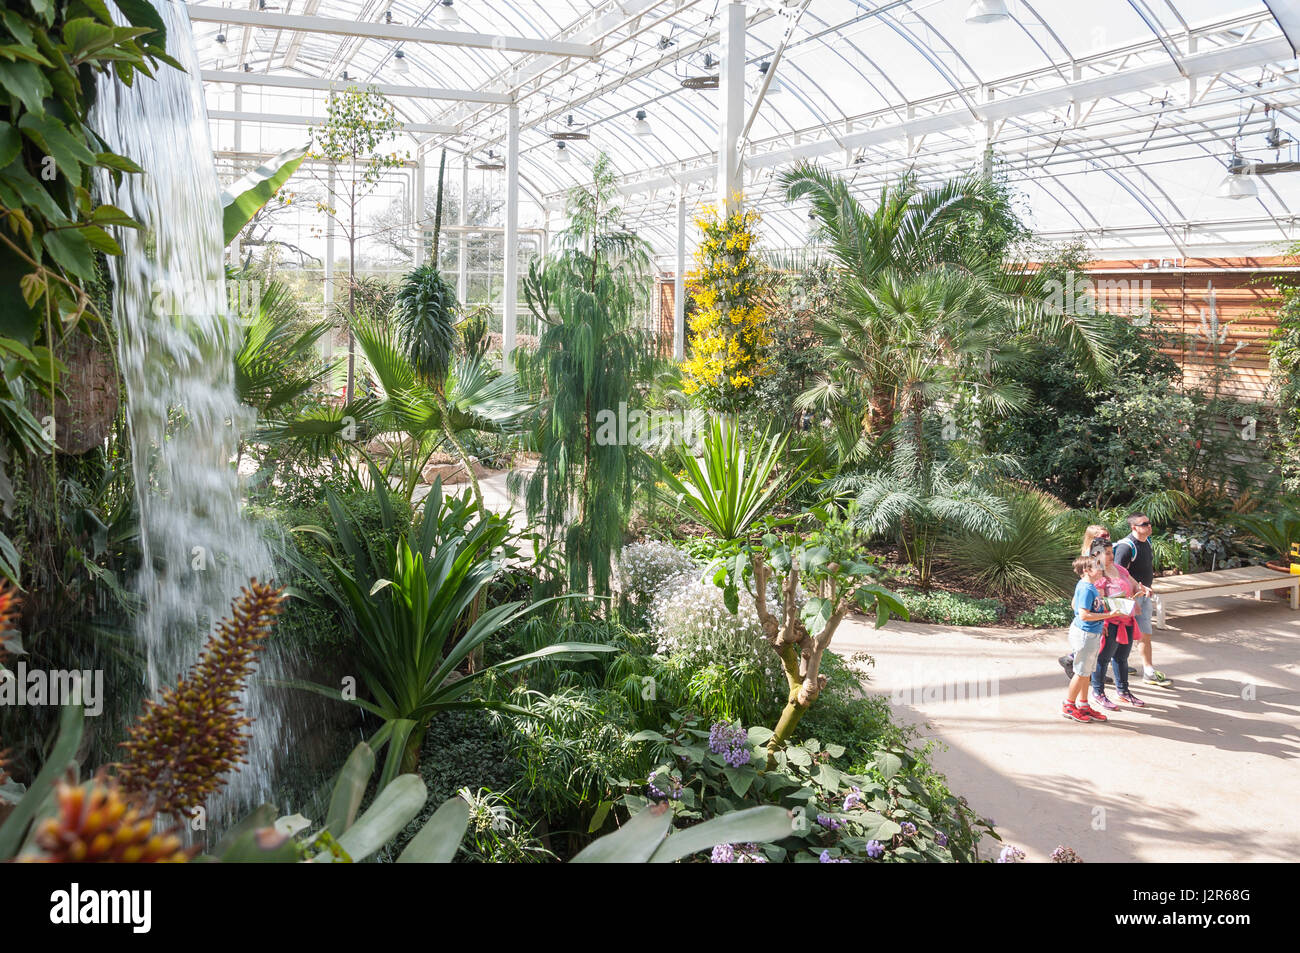 The Glasshouse at The Royal Horticultural Society's garden at Wisley, Wisley, Surrey, England, United Kingdom Stock Photo